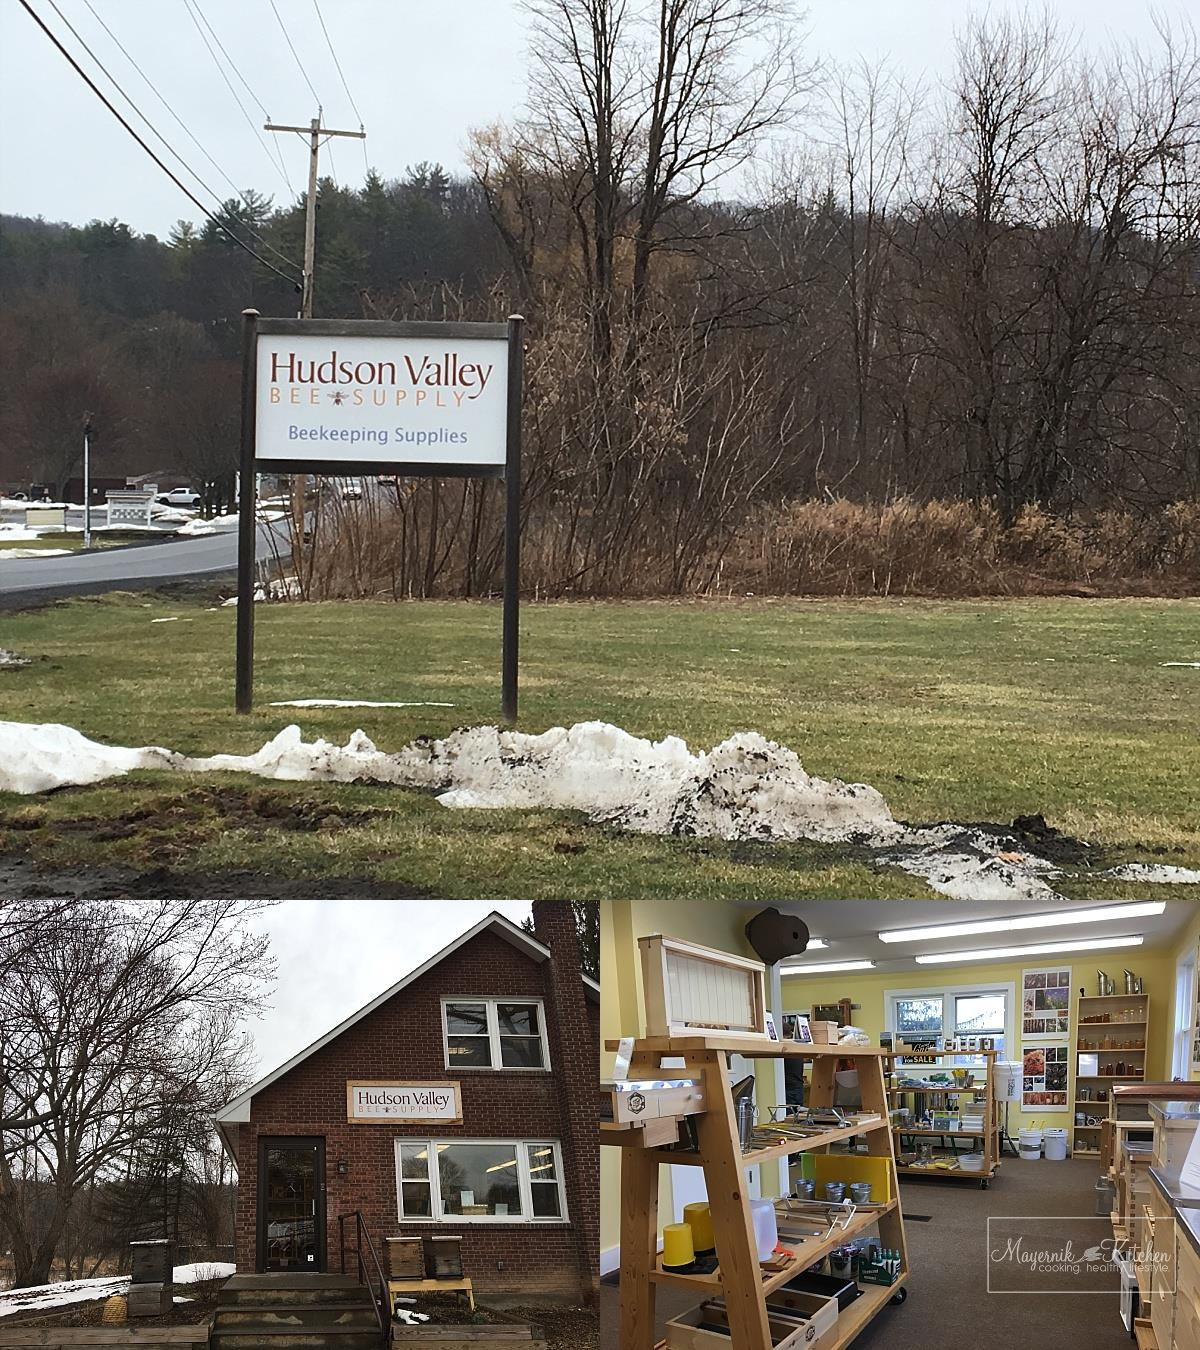 Hudson Valley Bee Supply - Hudson Valley New York - Mayernik Kitchen